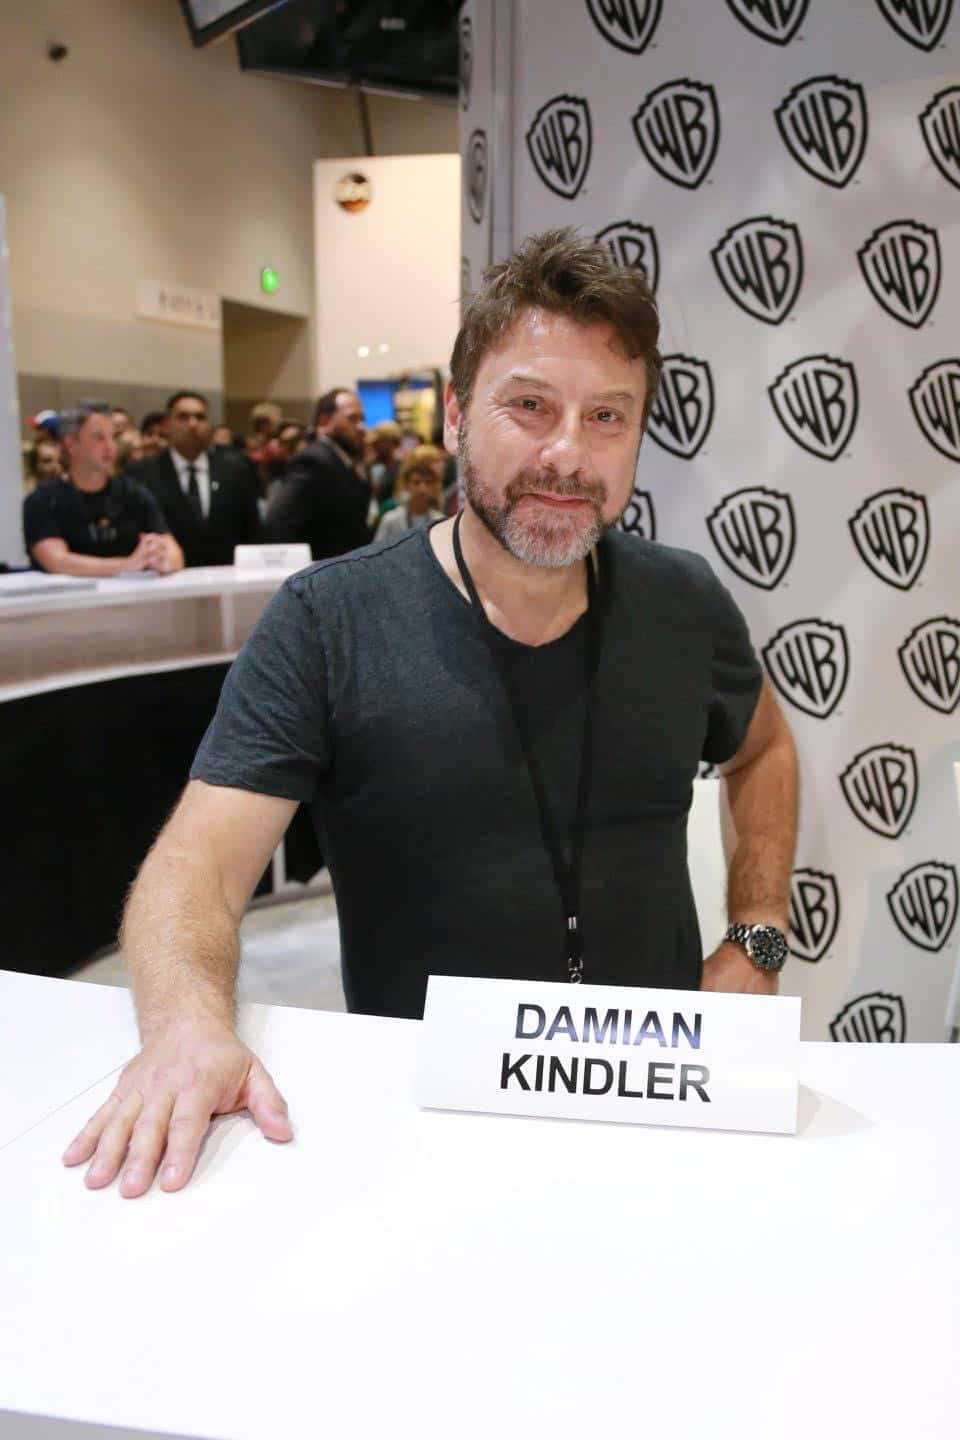 KRYPTON executive producer Damian Kindler visits the Warner Bros. booth at Comic-Con 2017 on Saturday, July 22. #WBSDCC (© 2017 WBEI. All Rights Reserved)